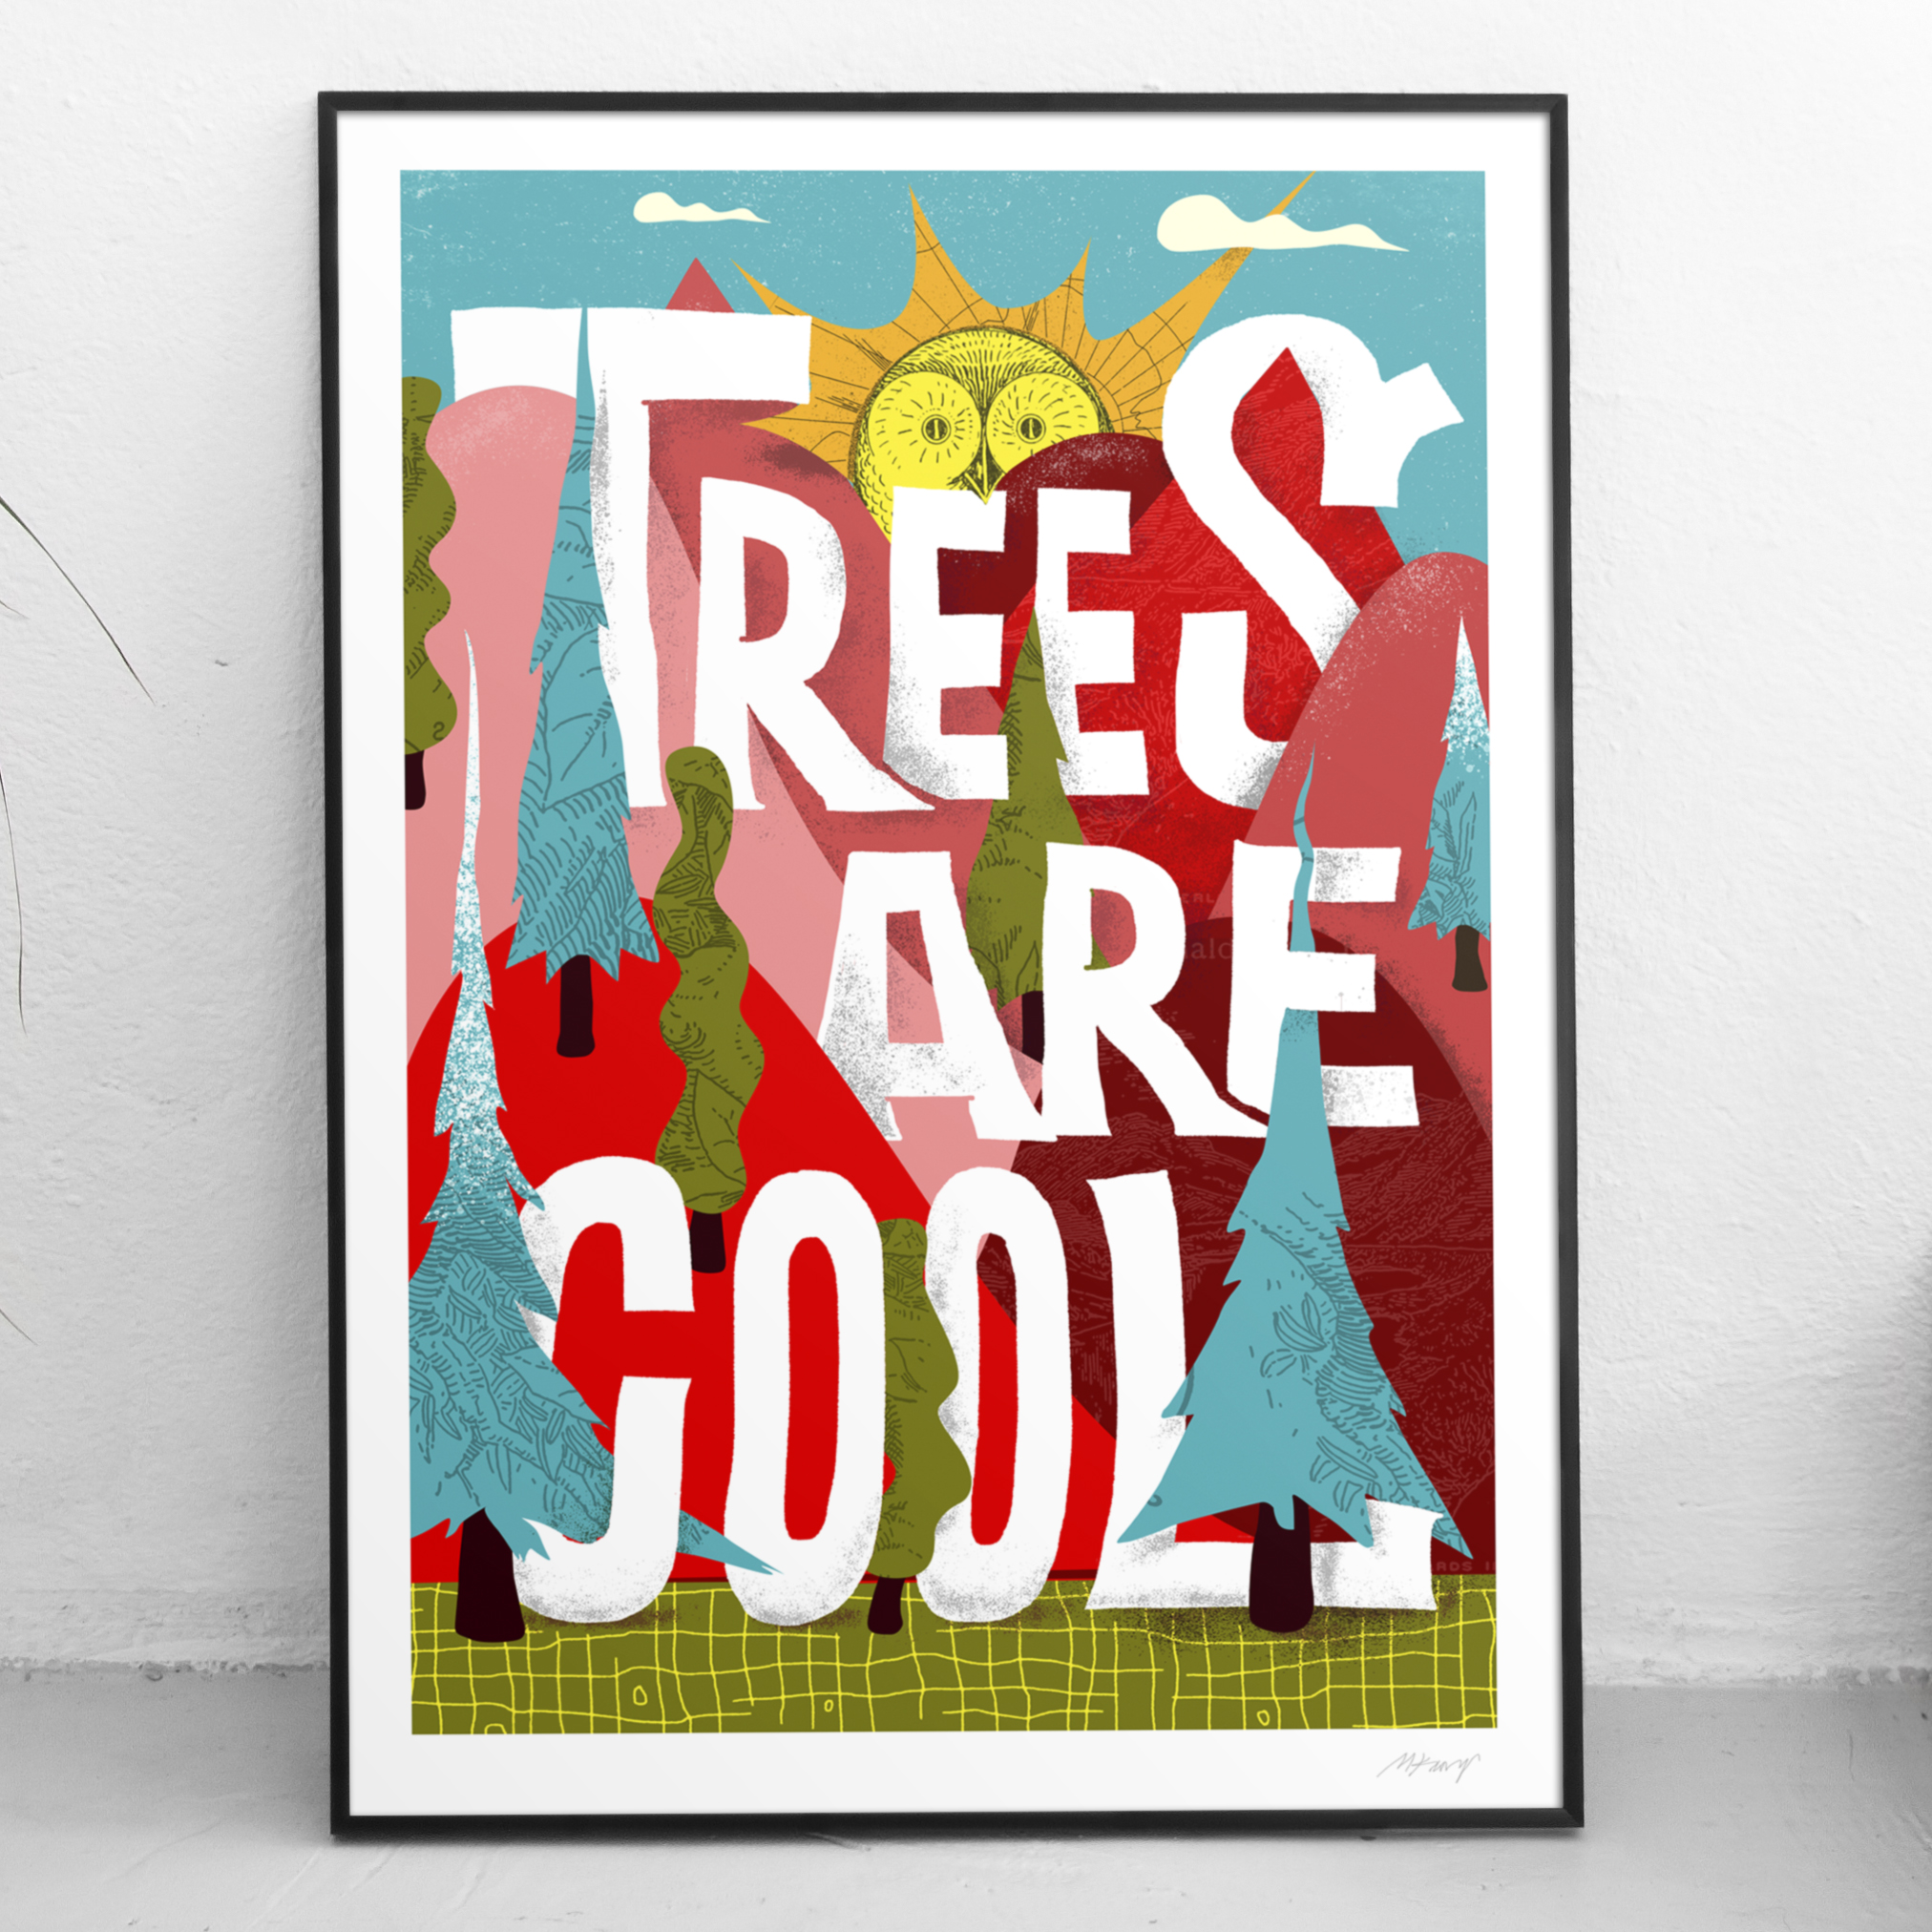 Trees_are_cool_frame